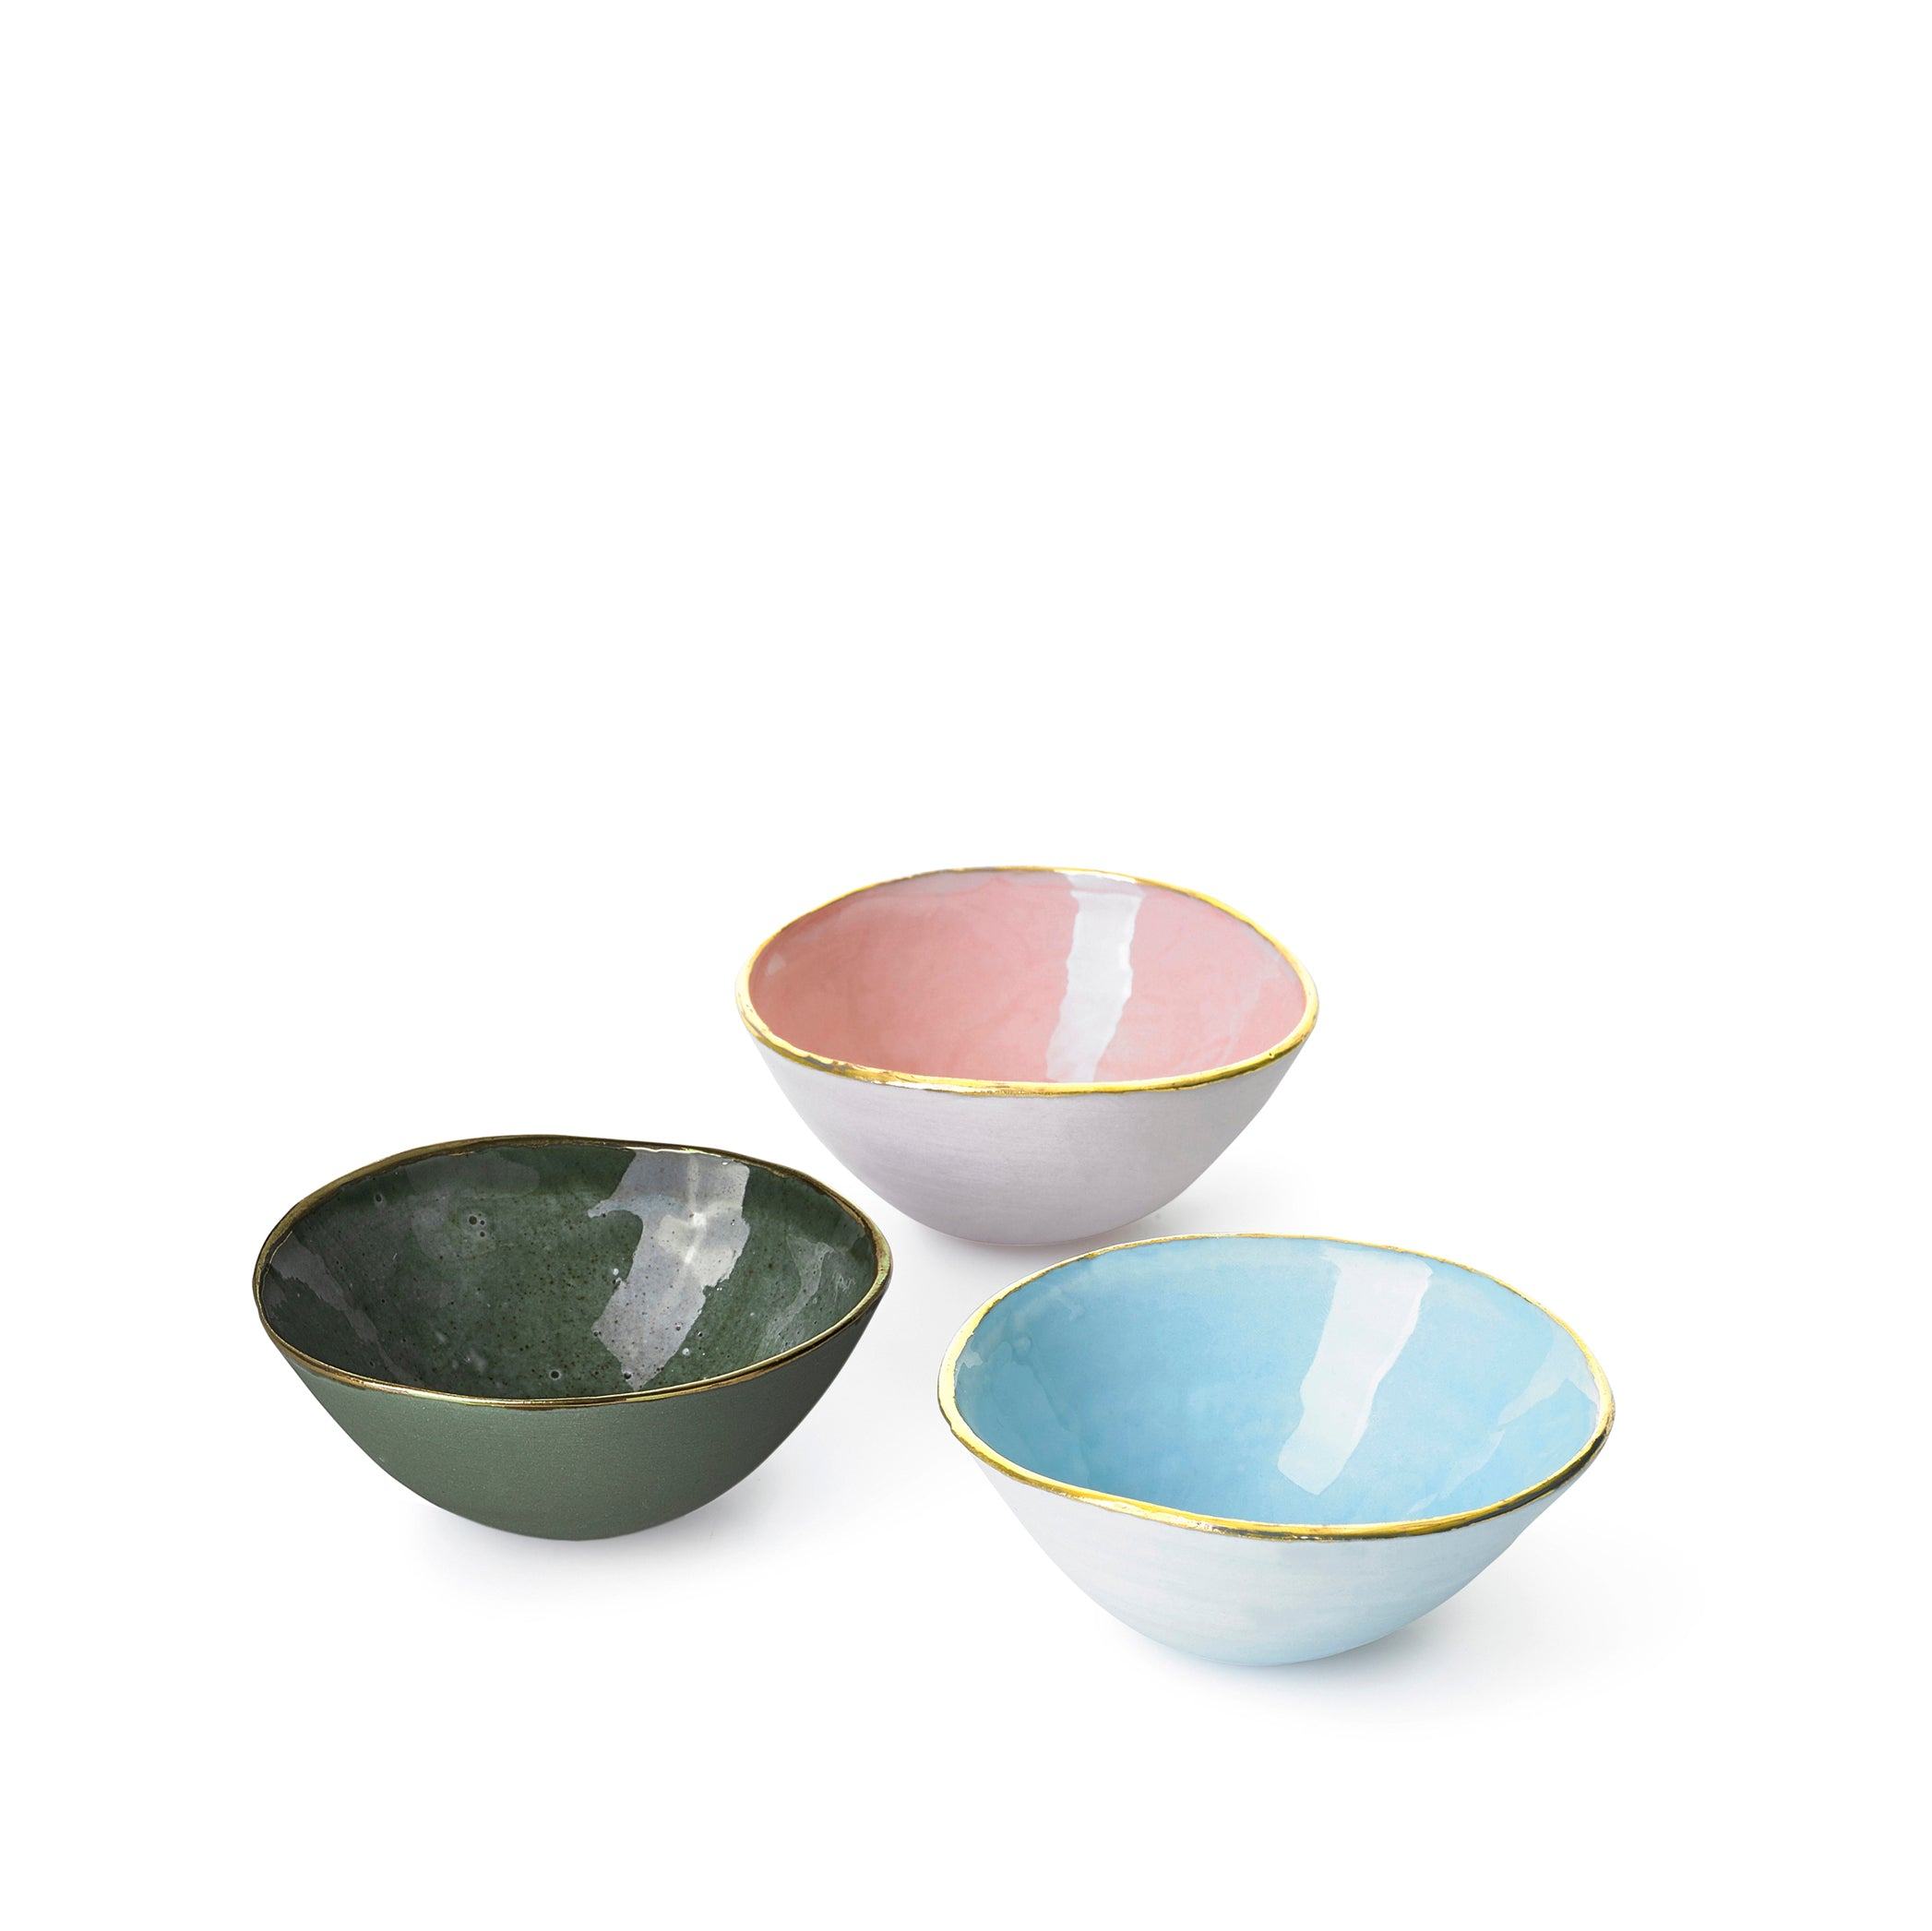 Full Painted Olive Green Ceramic Bowl with Gold Rim, 10cm